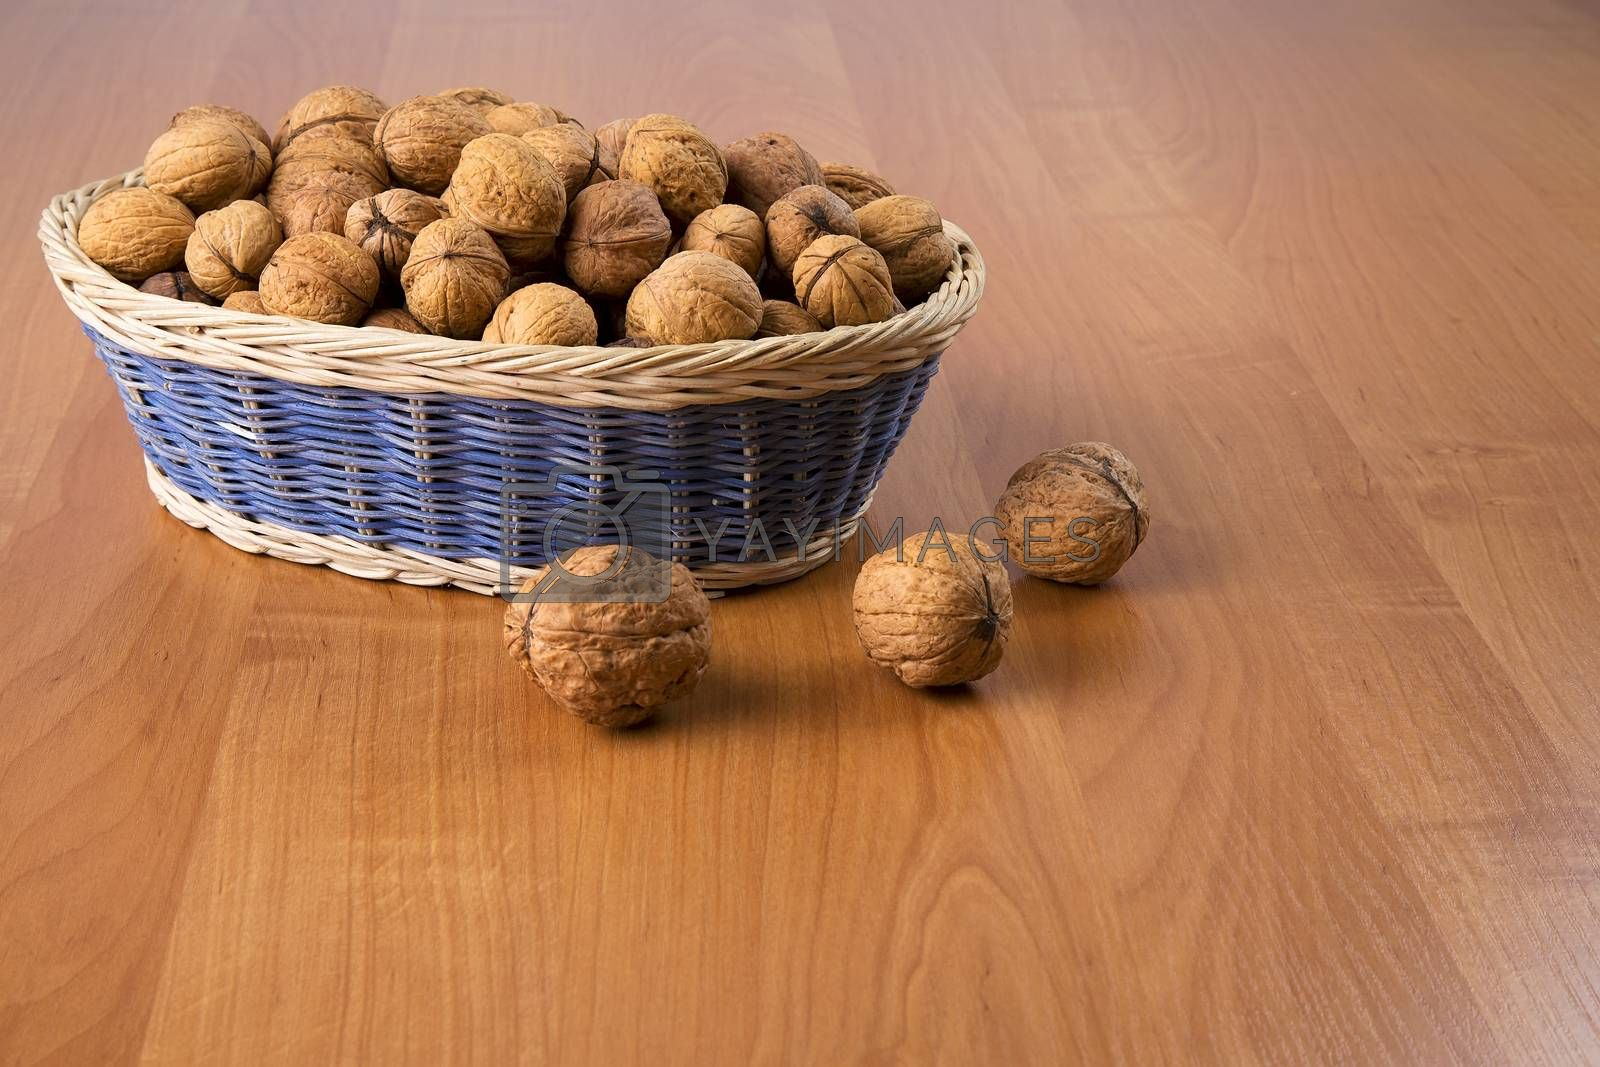 Nuts in a basket on a wooden background